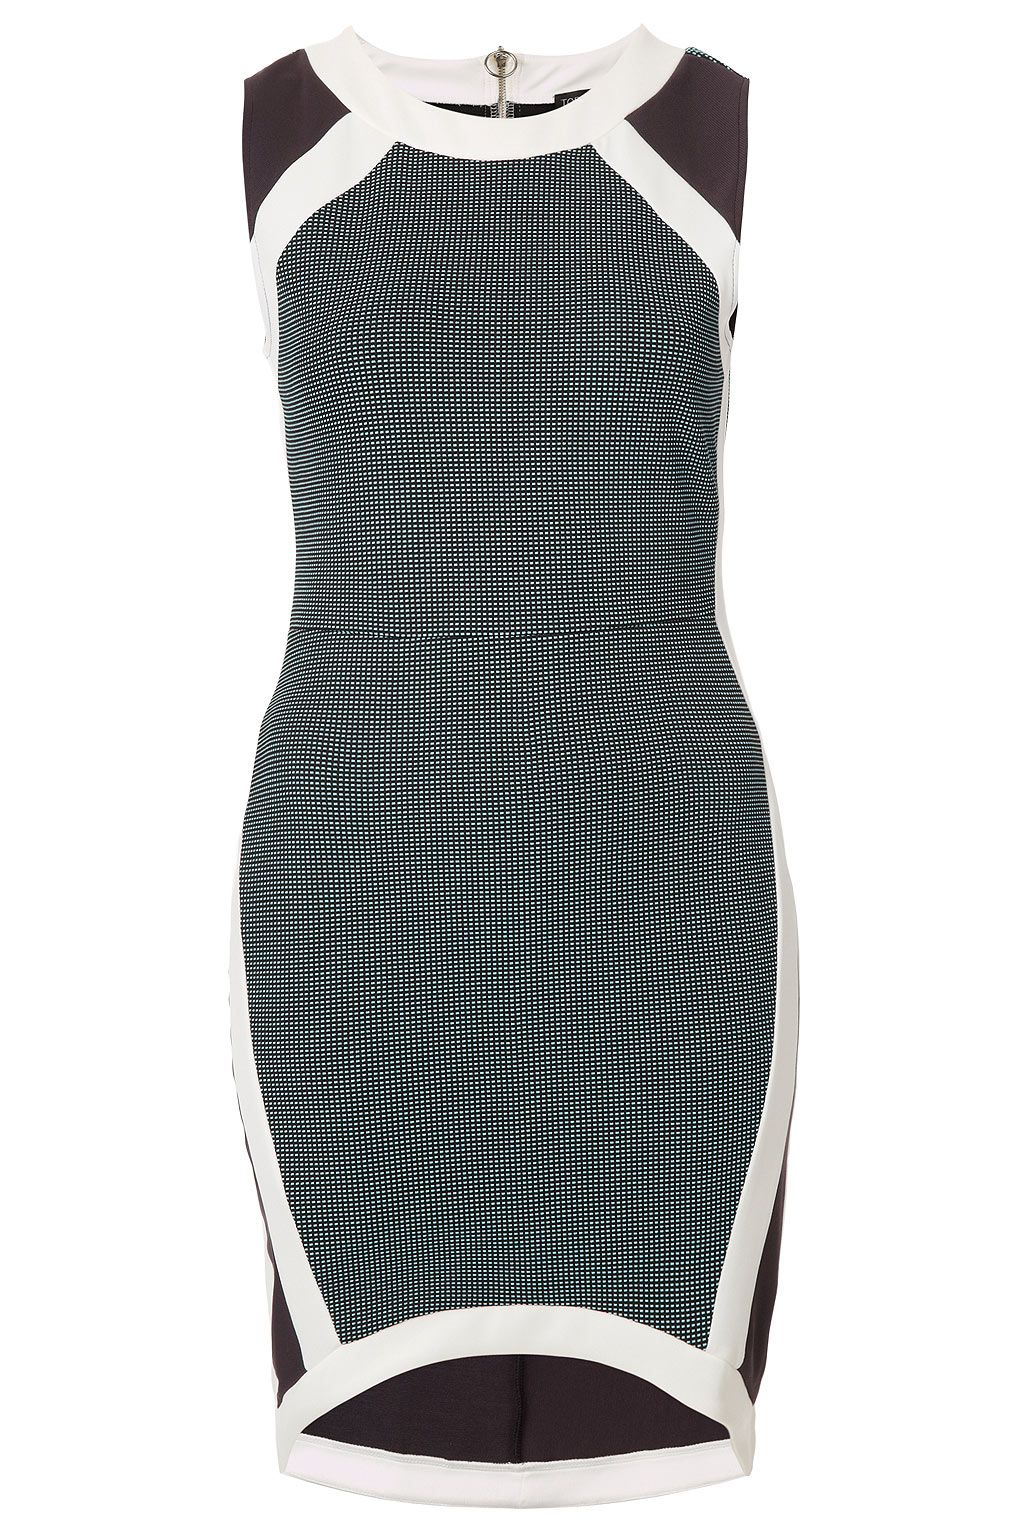 Mixed Texture Bodycon Dress - Going Out Dresses - Dresses - Clothing ...